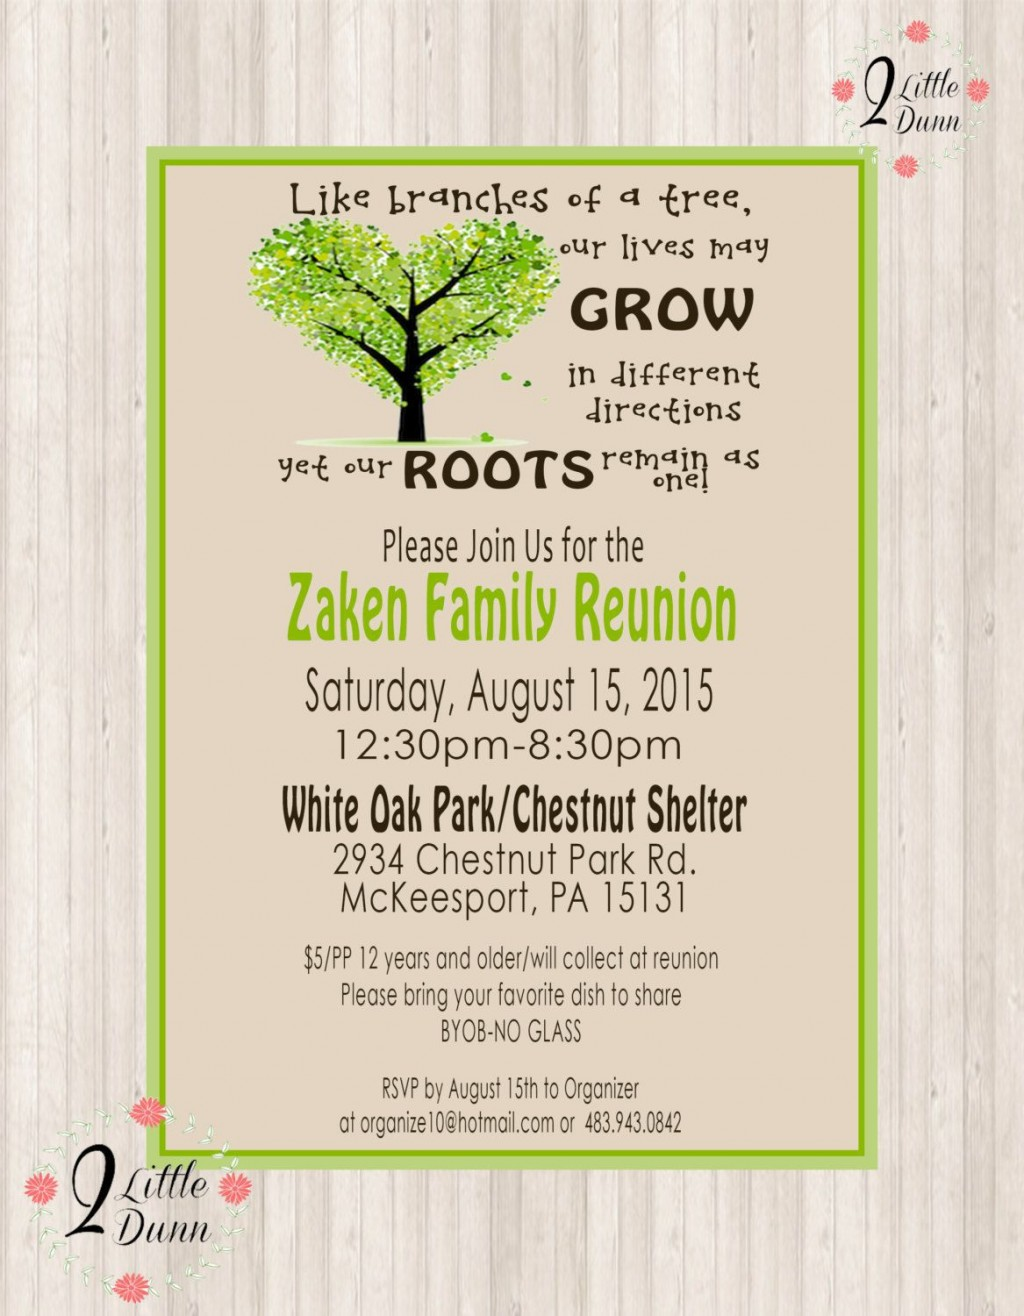 000 Unusual Family Reunion Invitation Template Free High Def  For Word OnlineLarge